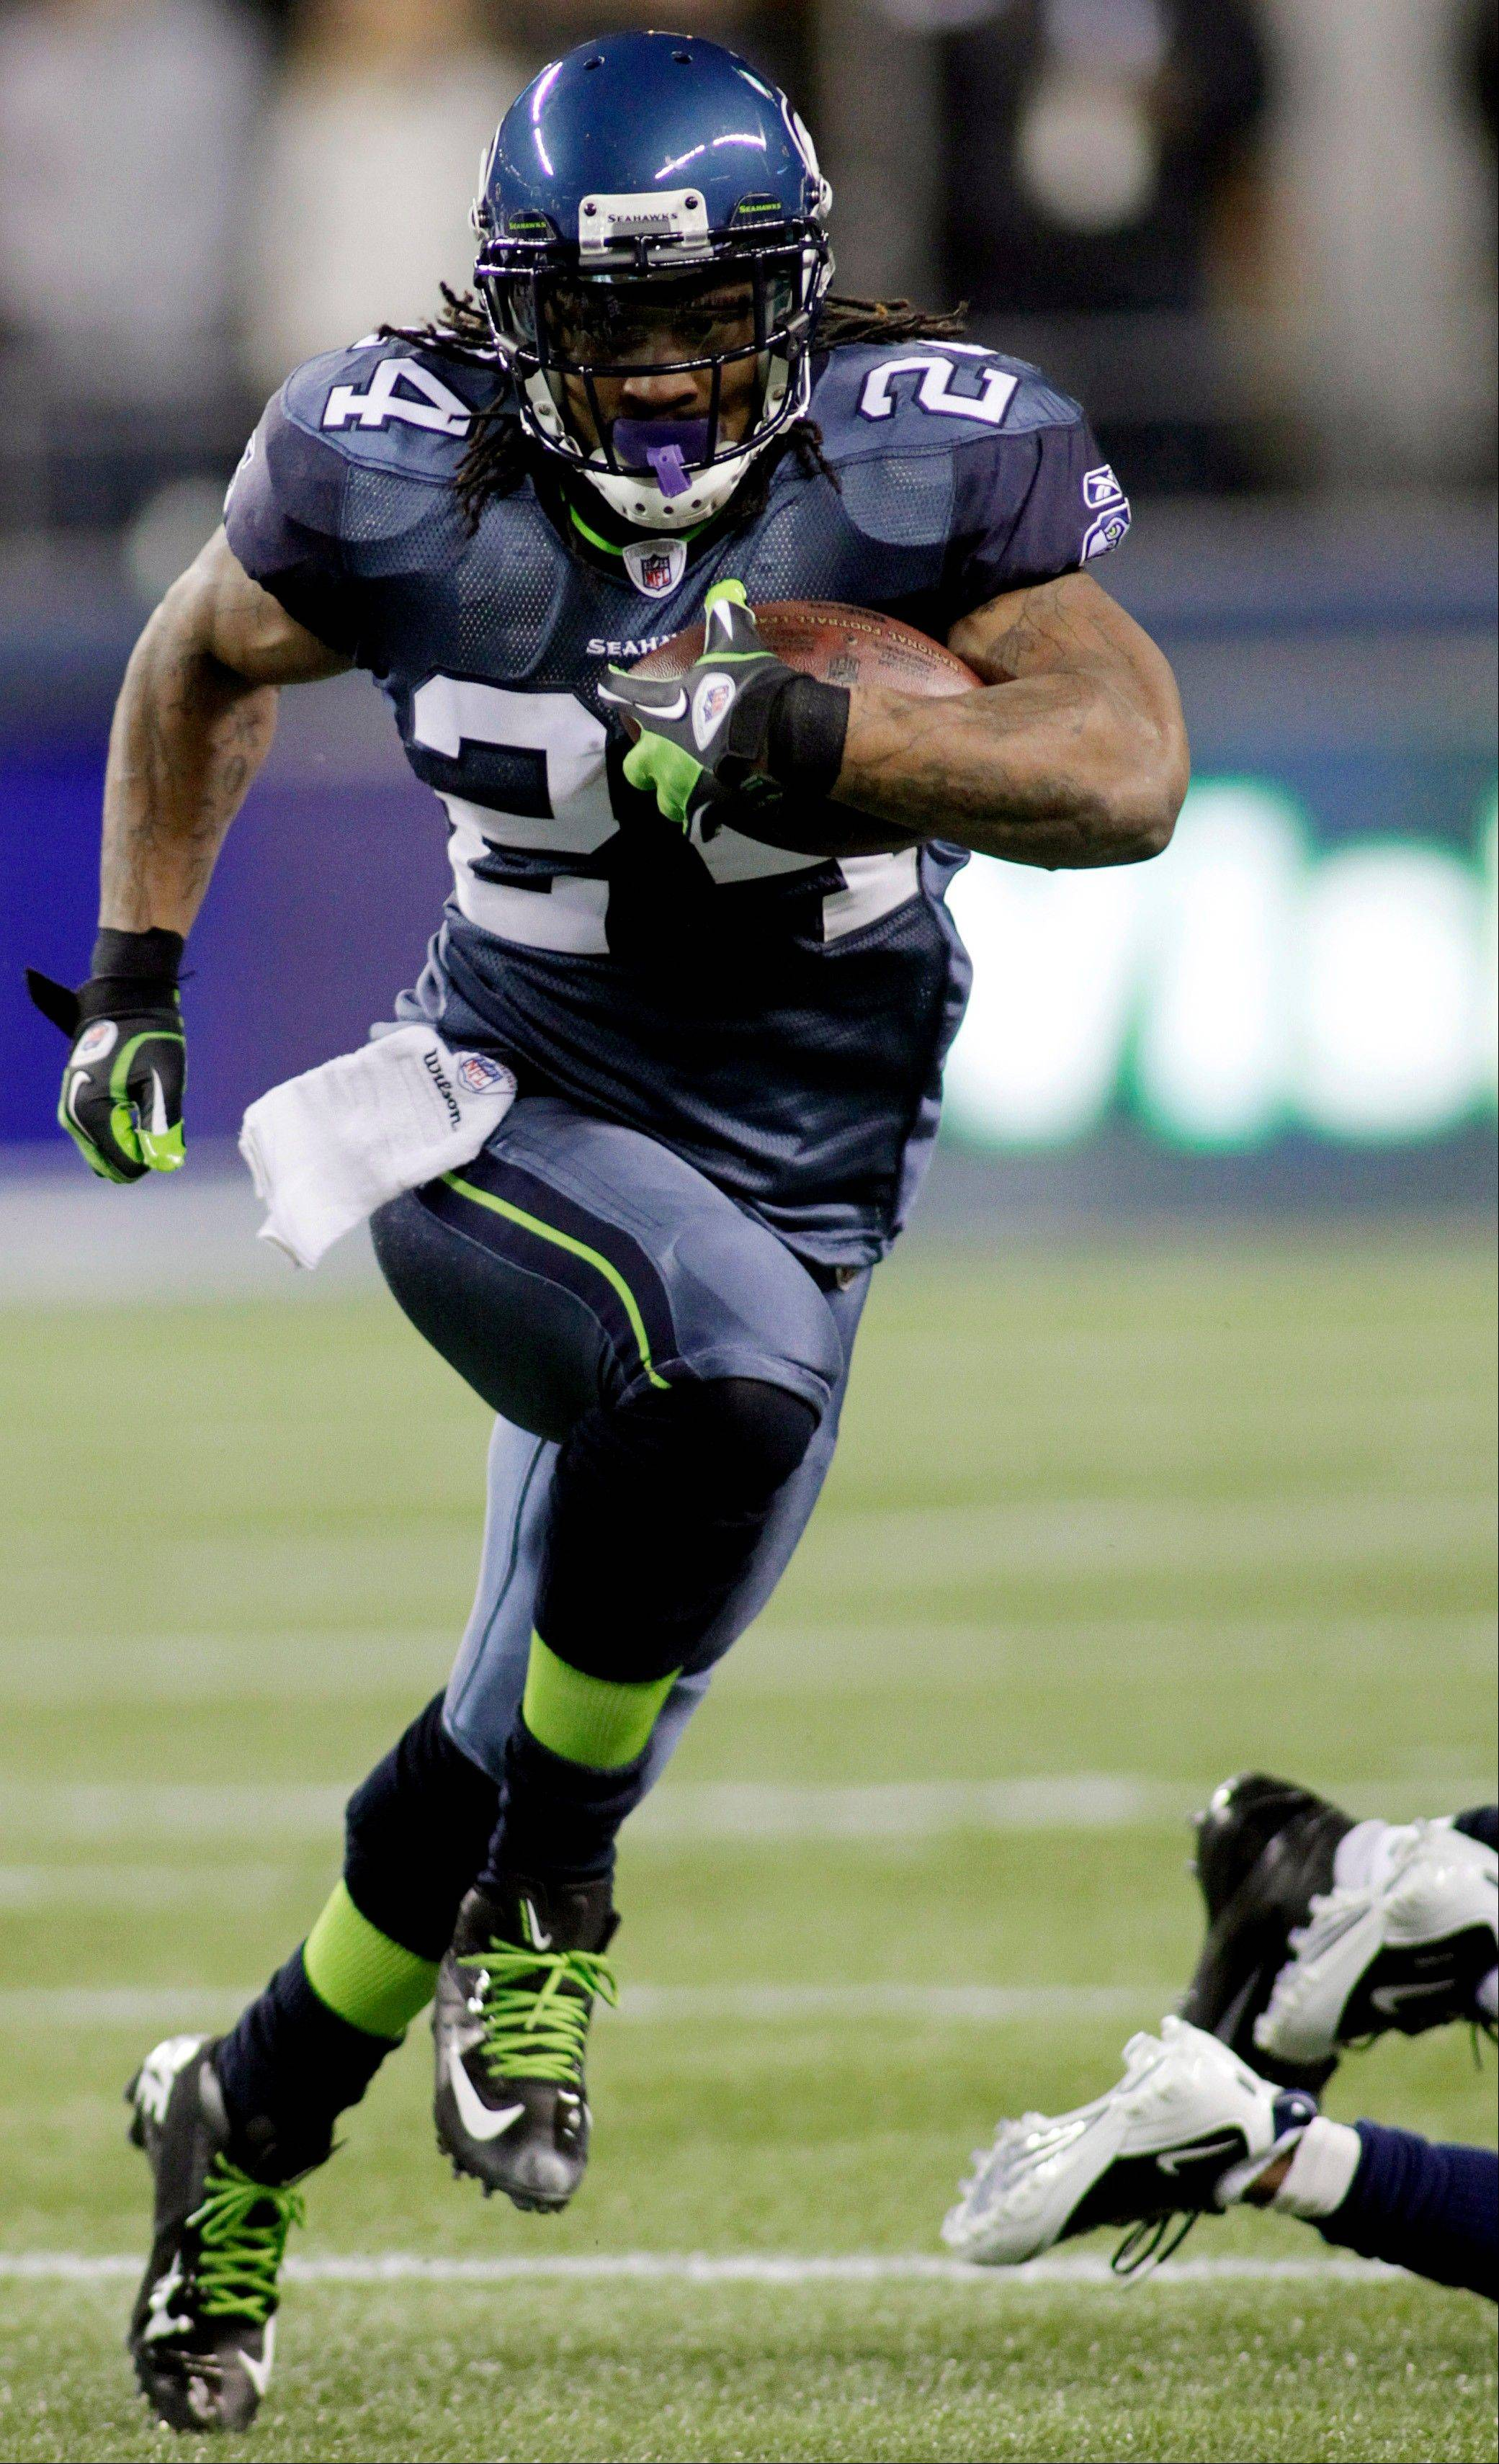 Seahawks running back Marshawn Lynch has averaged 117.7 yards over the last six games.